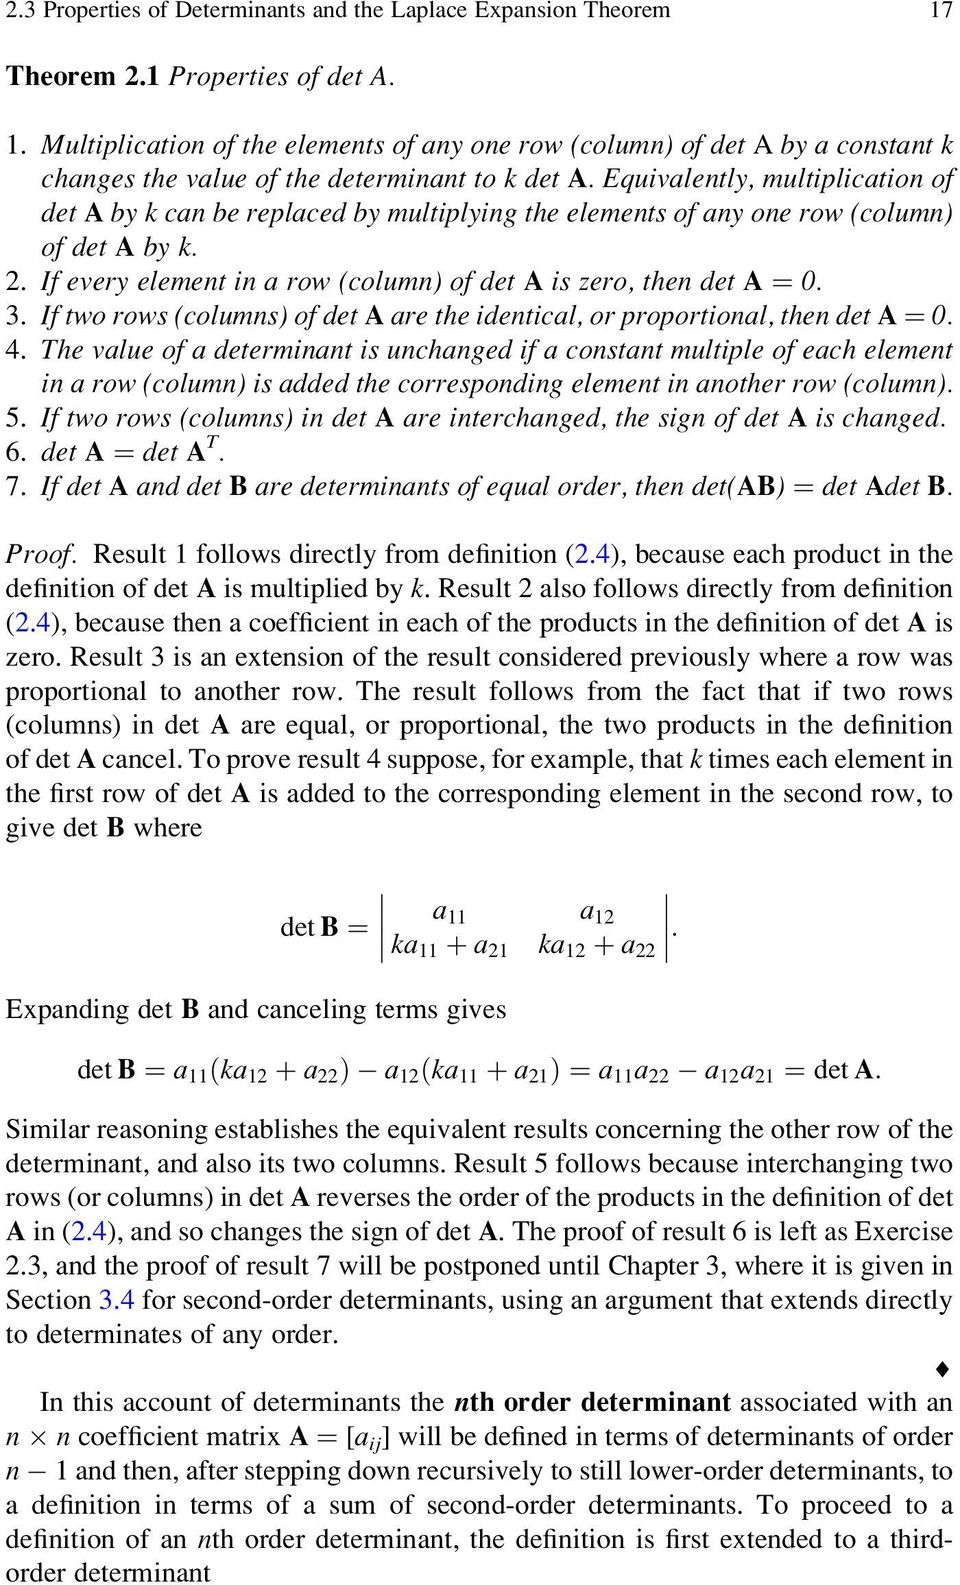 Chapter 2 Determinants, and Linear Independence - PDF